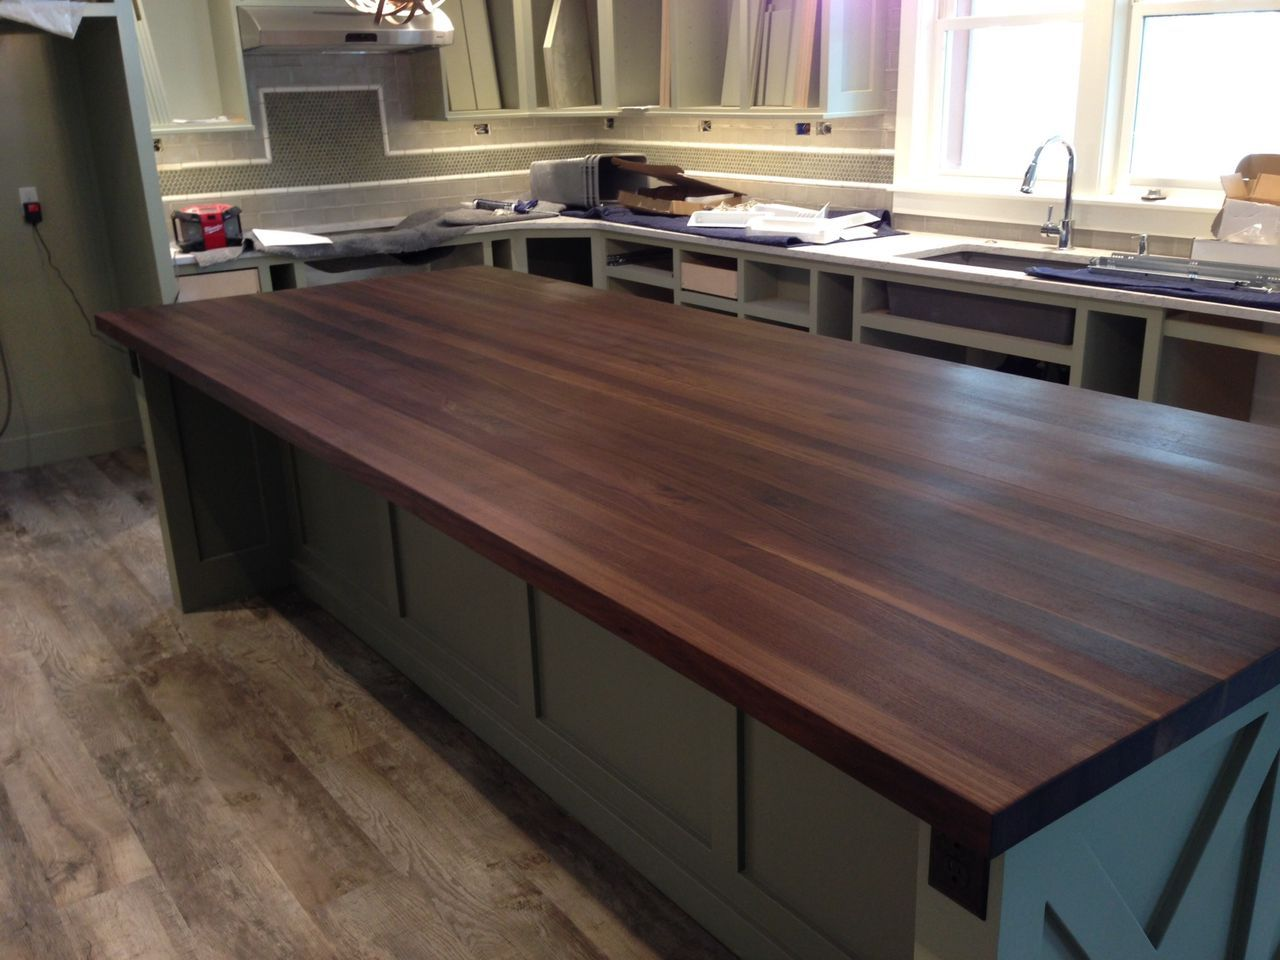 Makes A Beautiful Kitchen Island With Walnut Countertop Butcher Block Countertops Home Depot Black